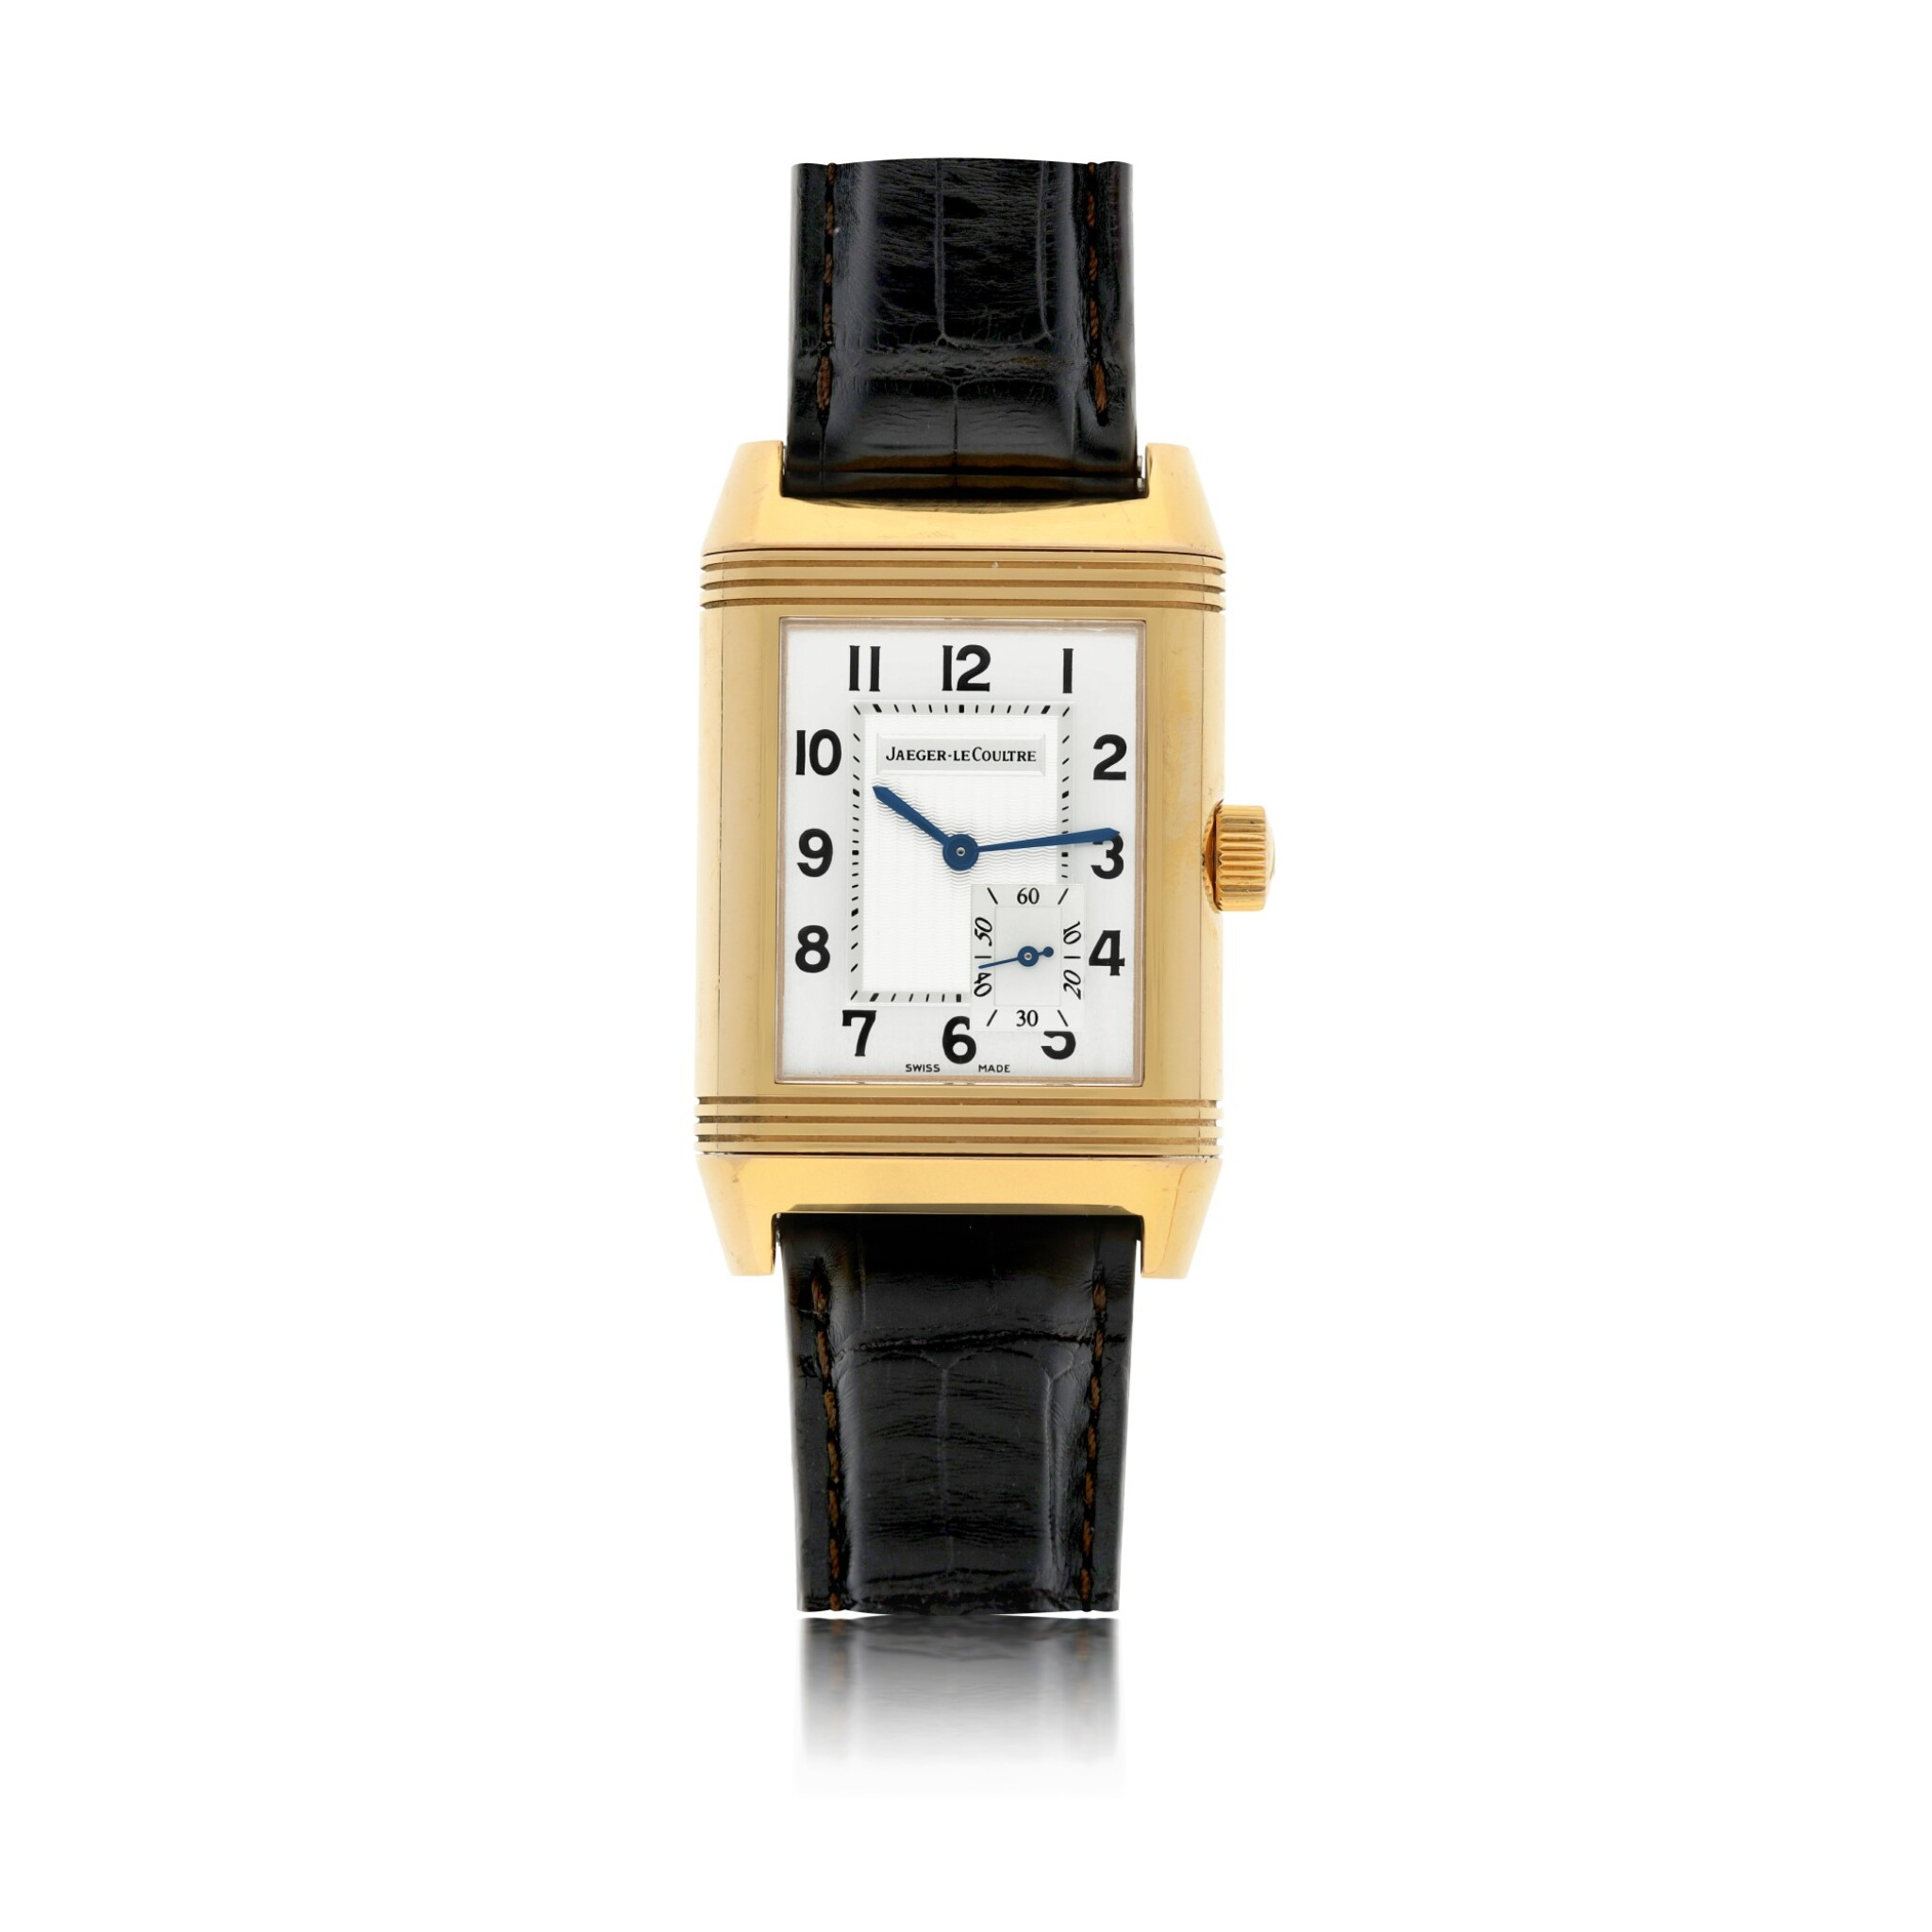 View full screen - View 1 of Lot 86. JAEGER-LECOULTRE   REF 240.214 REVERSO, A PINK GOLD RECTANGULAR REVERSIBLE WRISTWATCH WITH POWER RESERVE INDICATION CIRCA 2005.